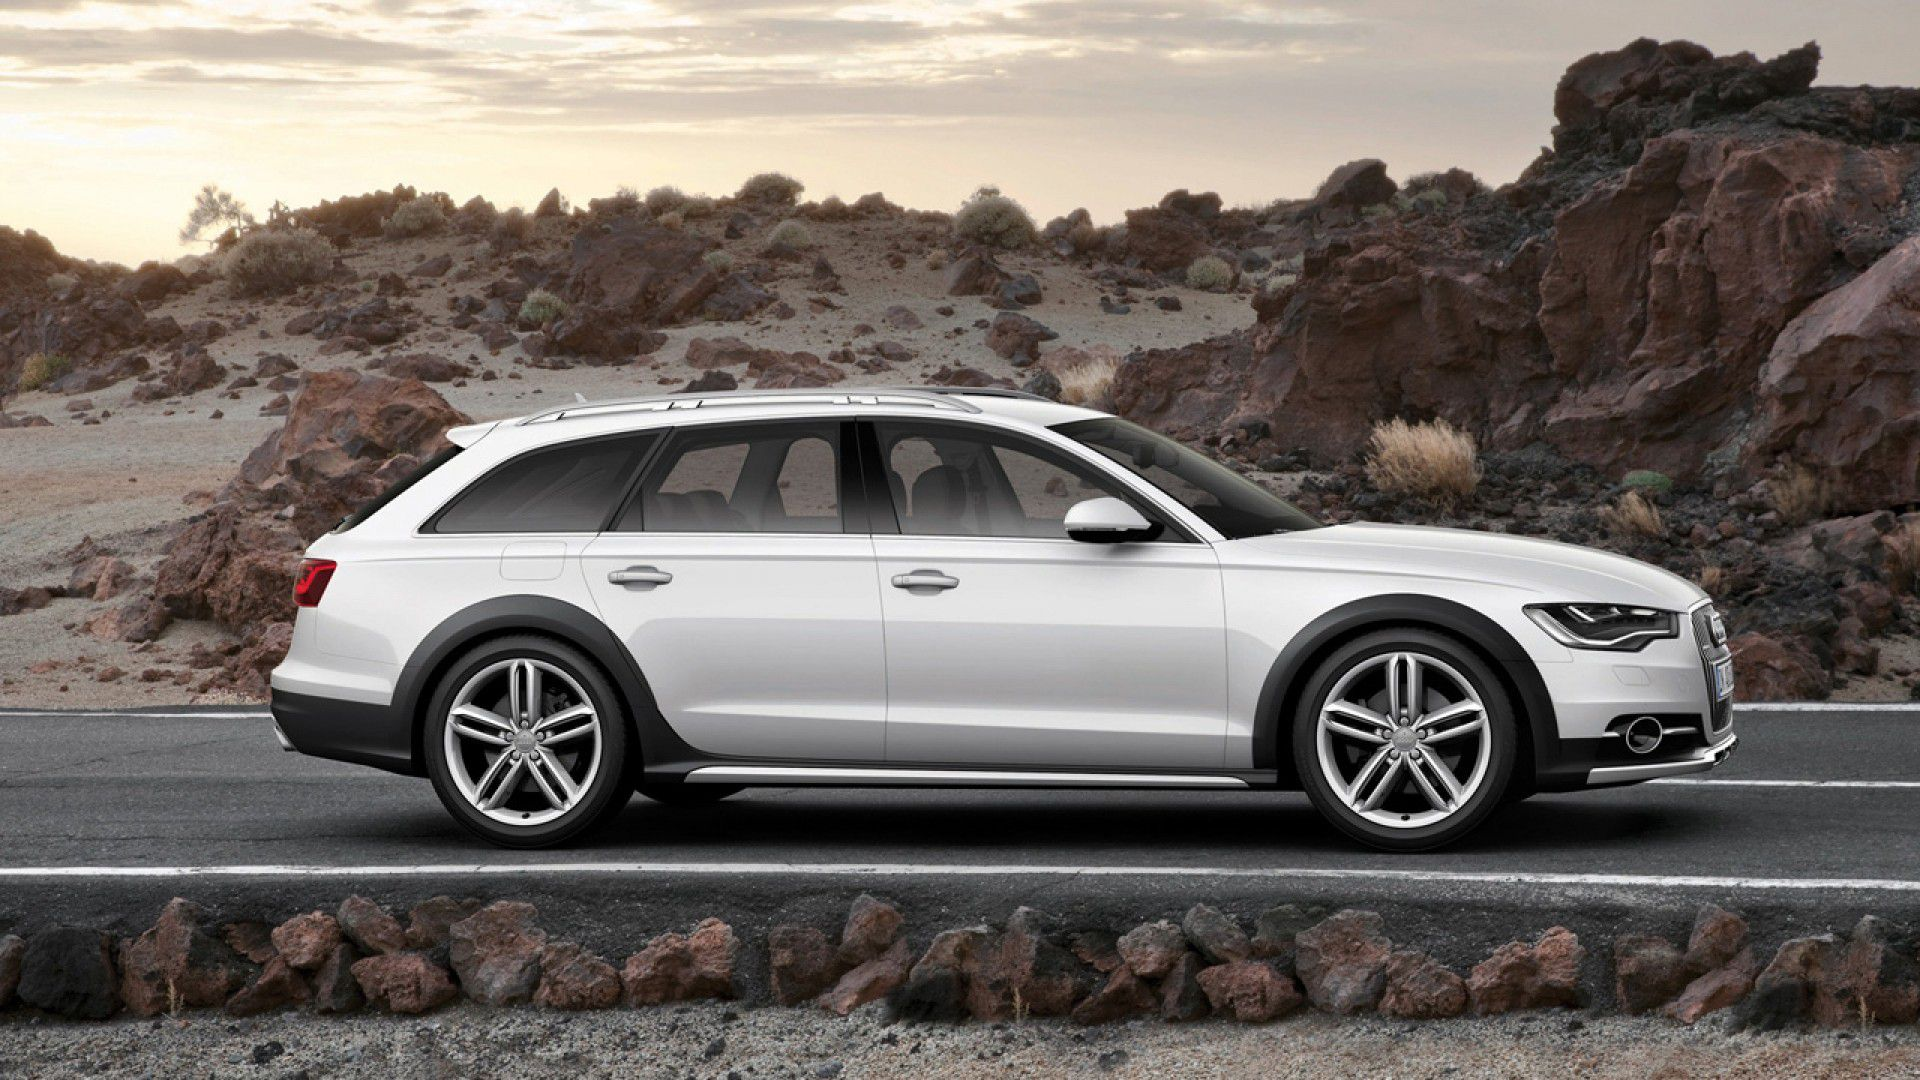 Audi Of Austin >> Audi Allroad quattro (2000 to 2005) » Definitive List - Cars